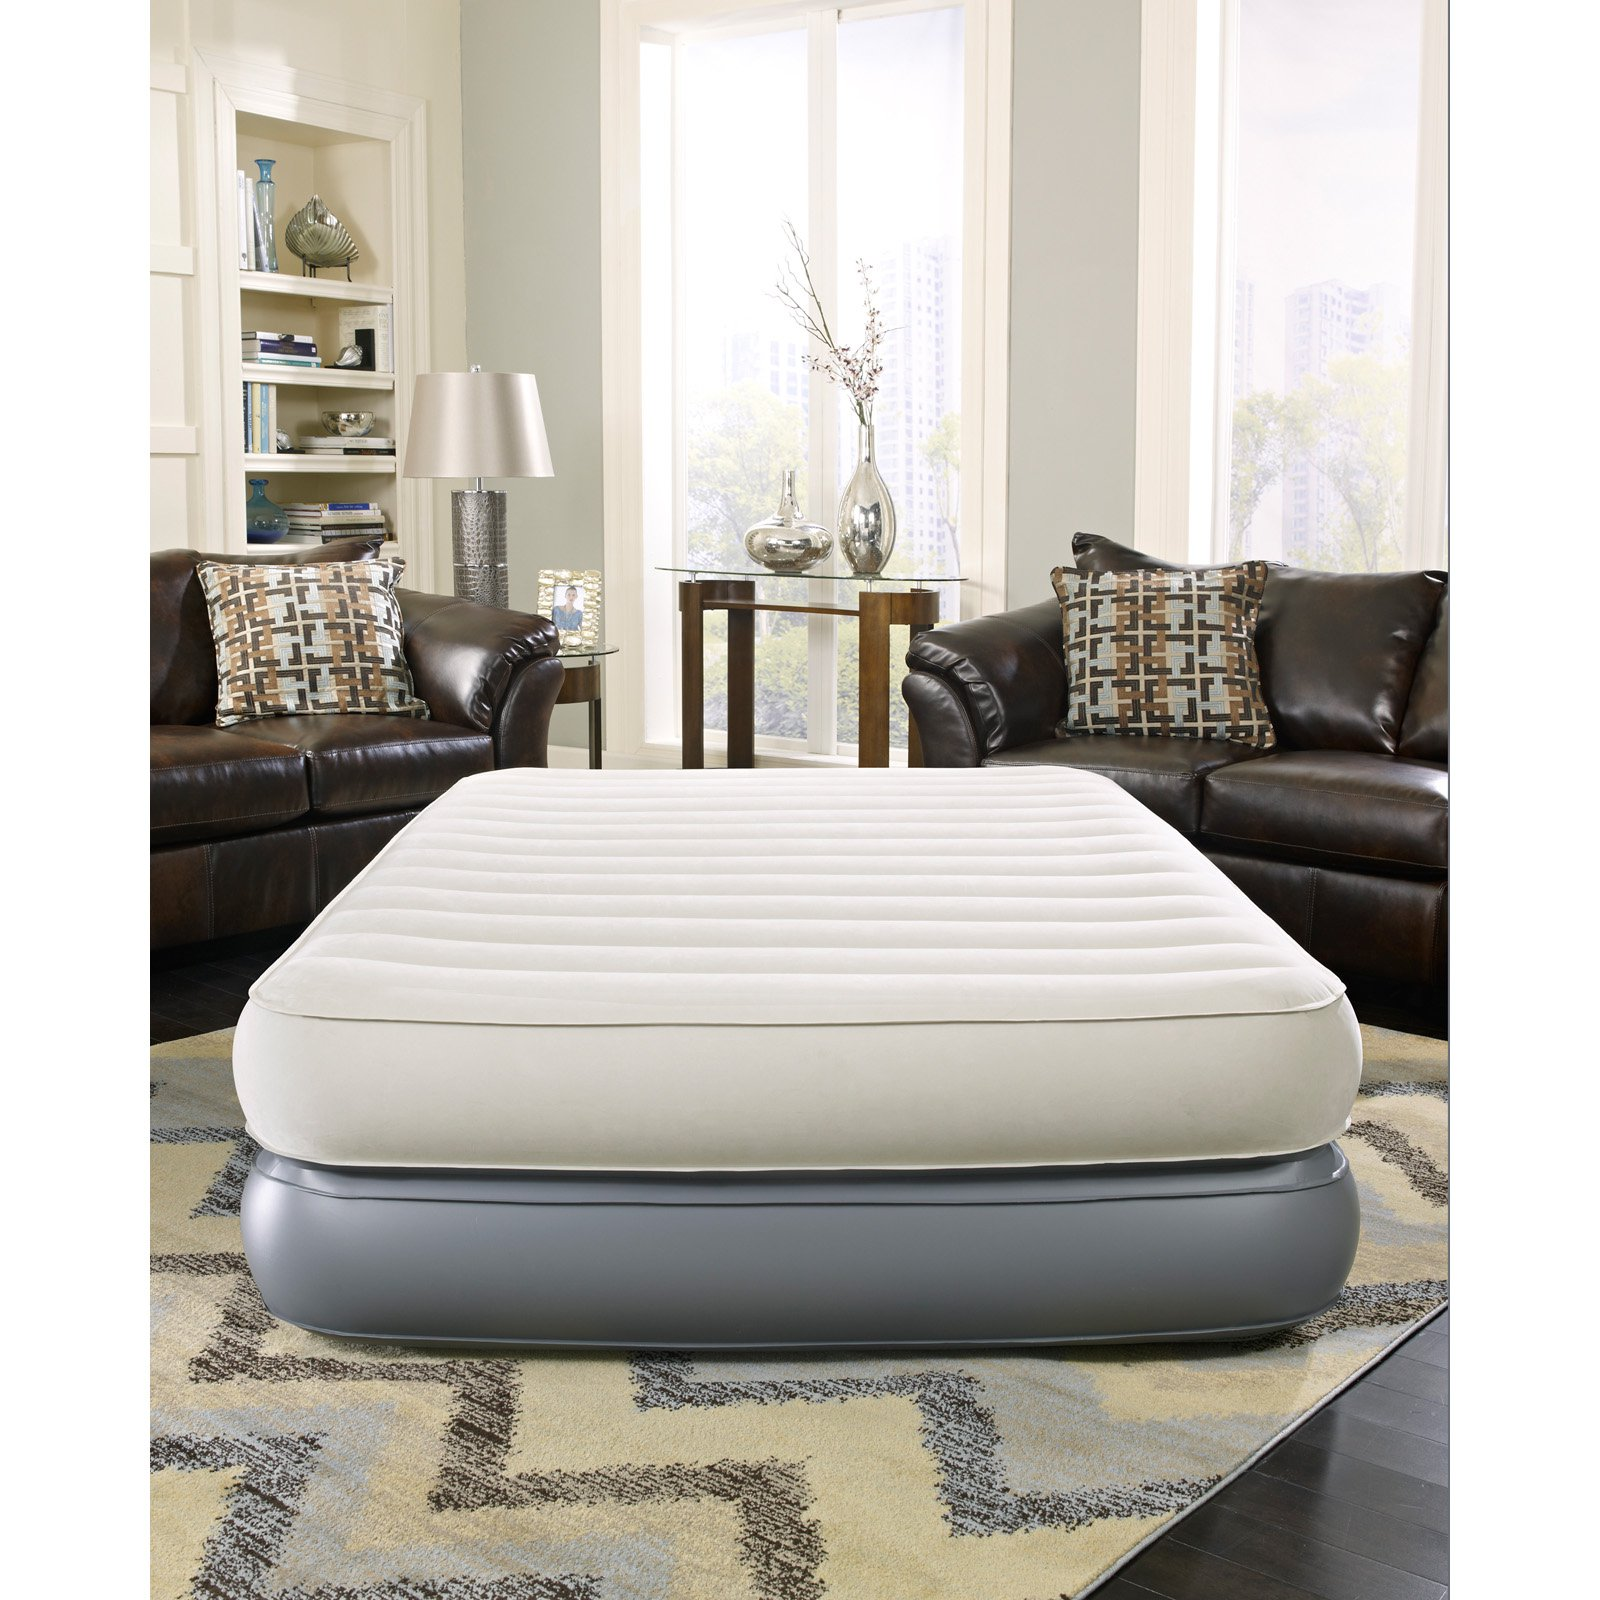 Simmons Beautyrest Comfort Suite 18 inch Queen Size Air Bed With Built In Pump by